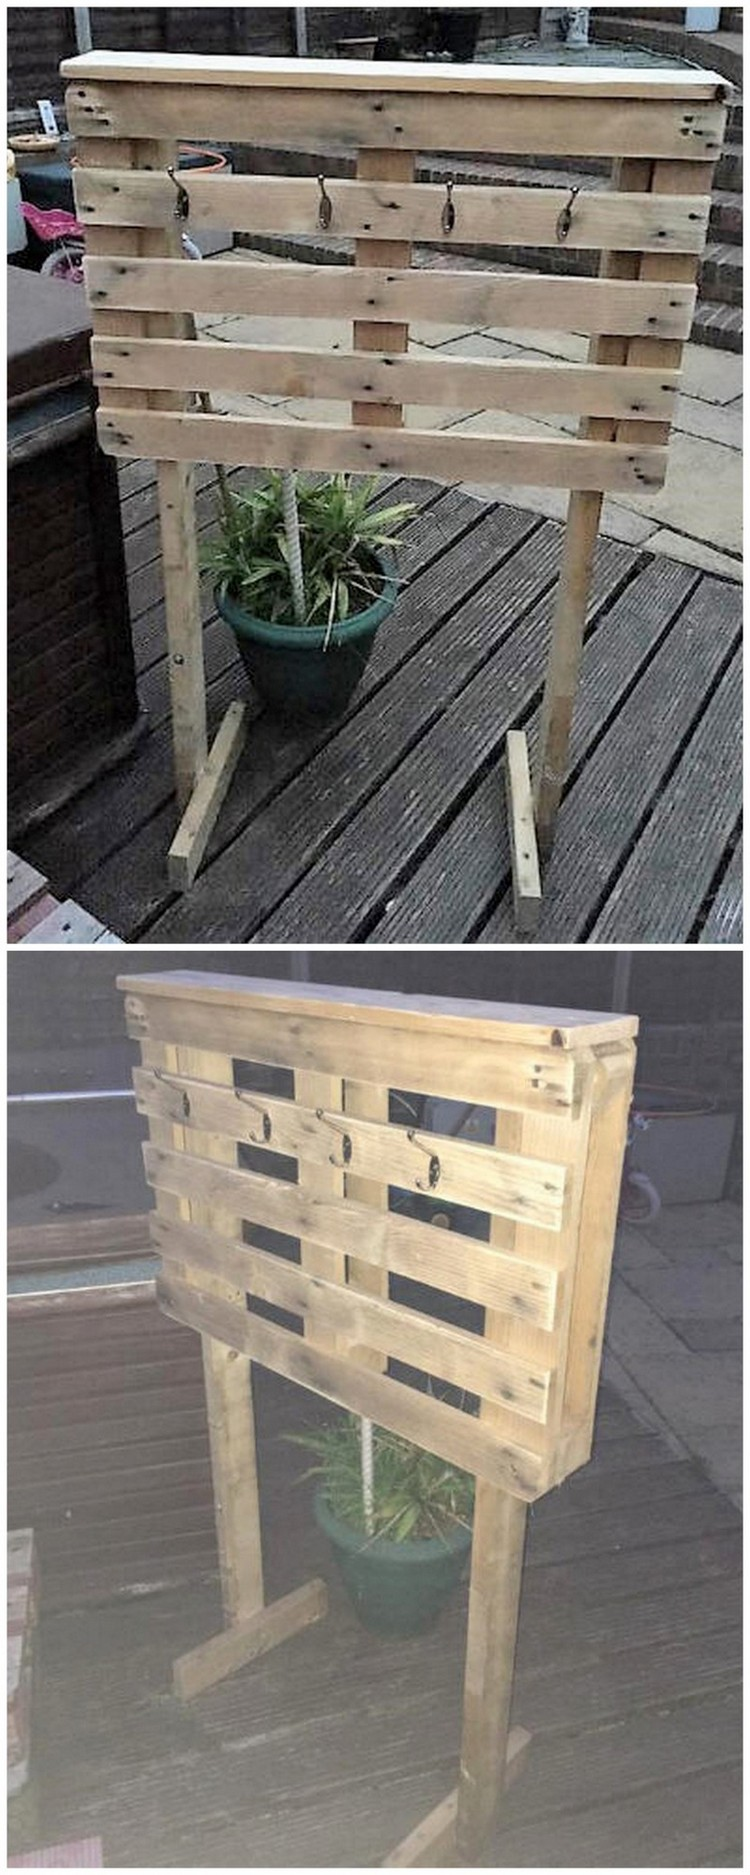 Wood Pallet Quick Towel Stand for Hot Tub